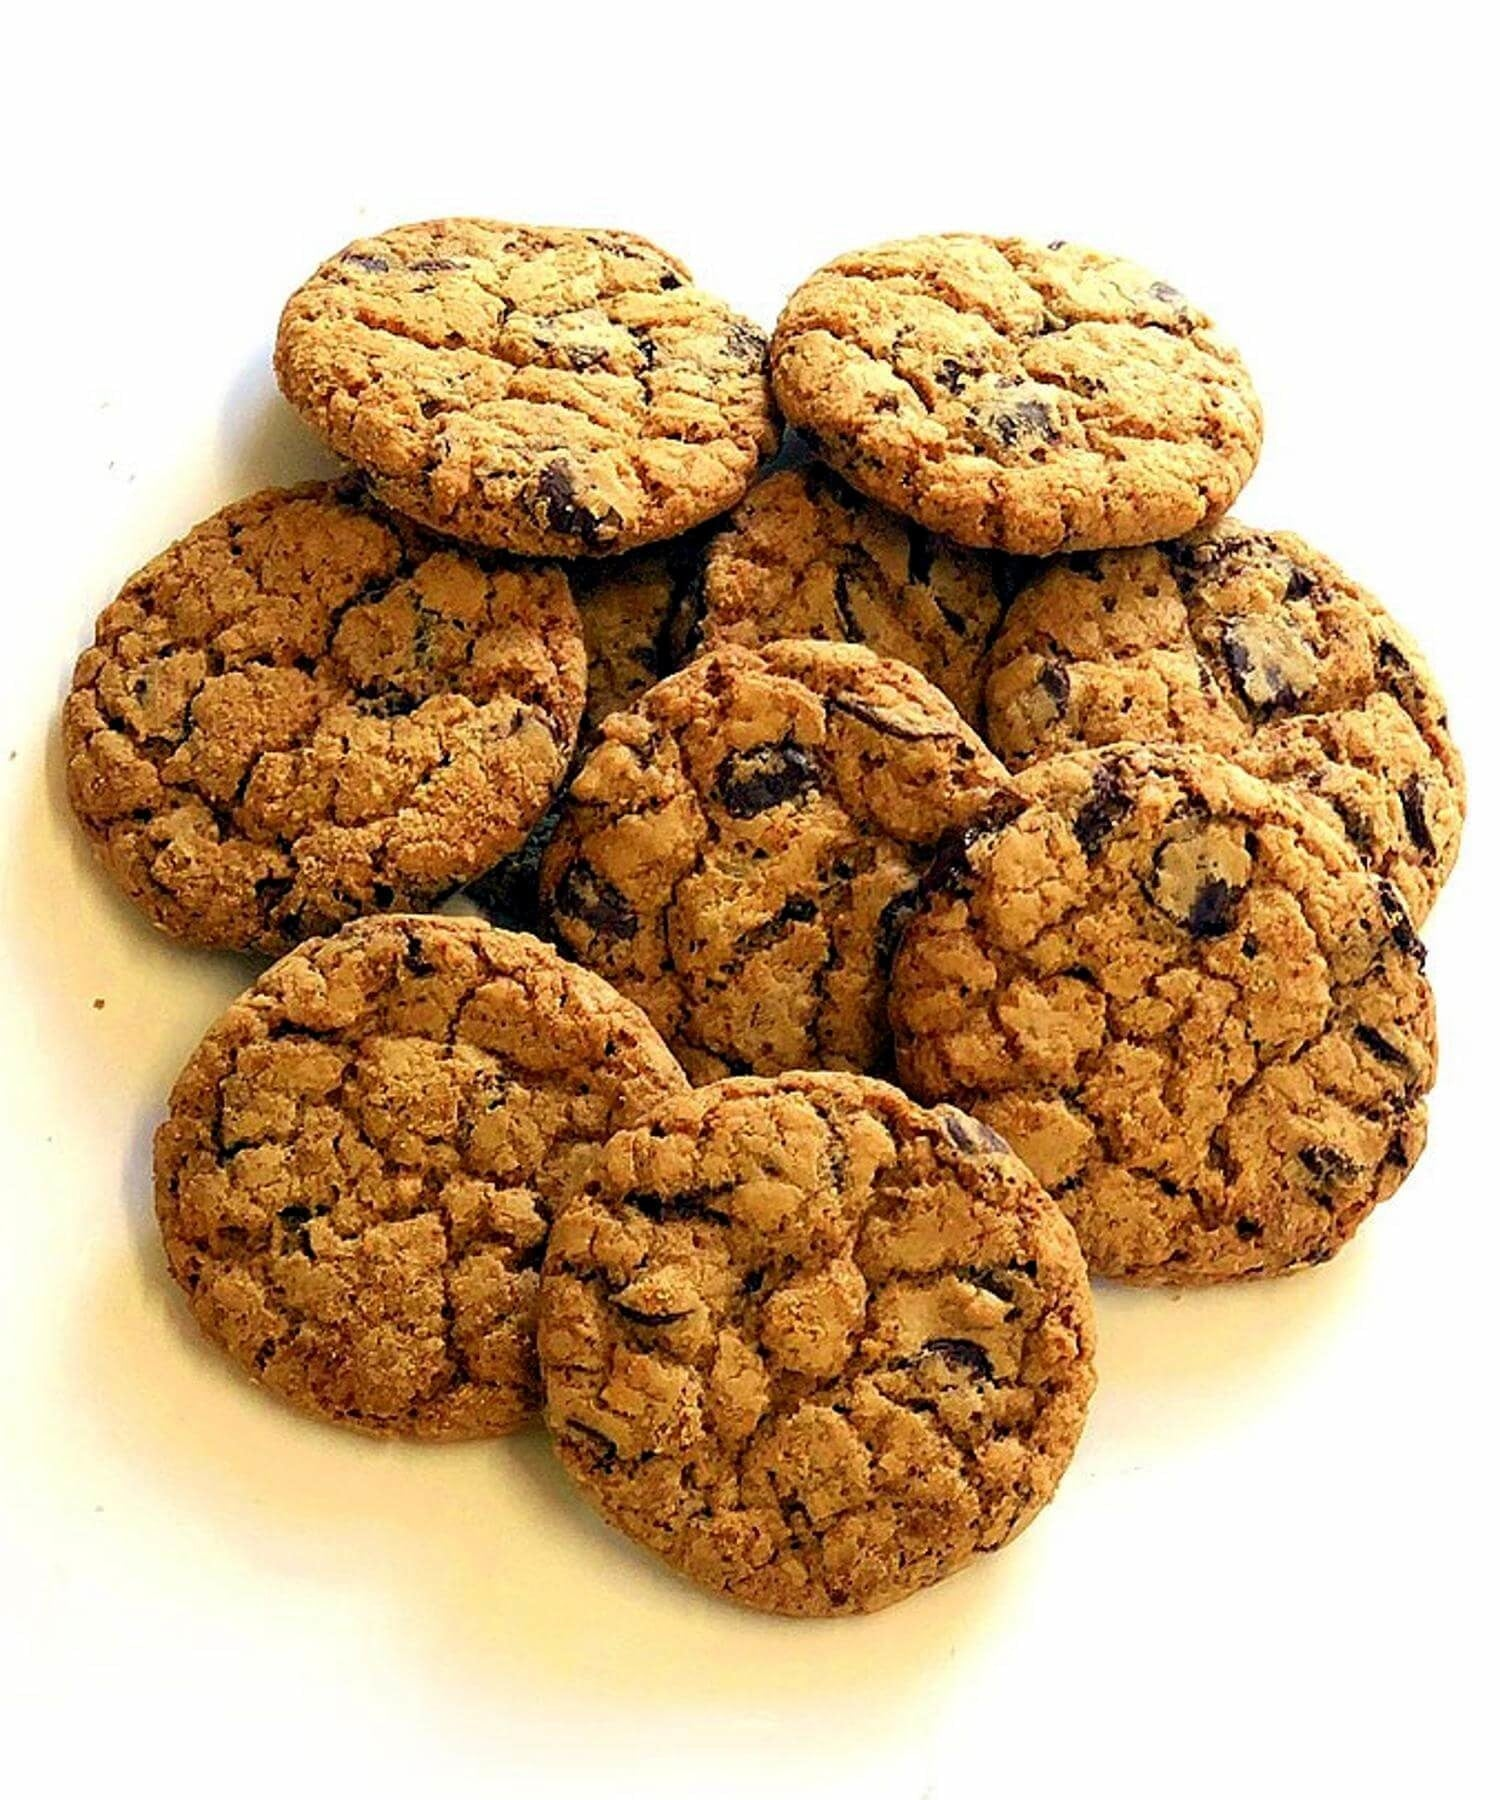 Belgian Chocolate Chip Cookies - [West Cork Biscuit Co.] - Food Gifts - Irish Gifts